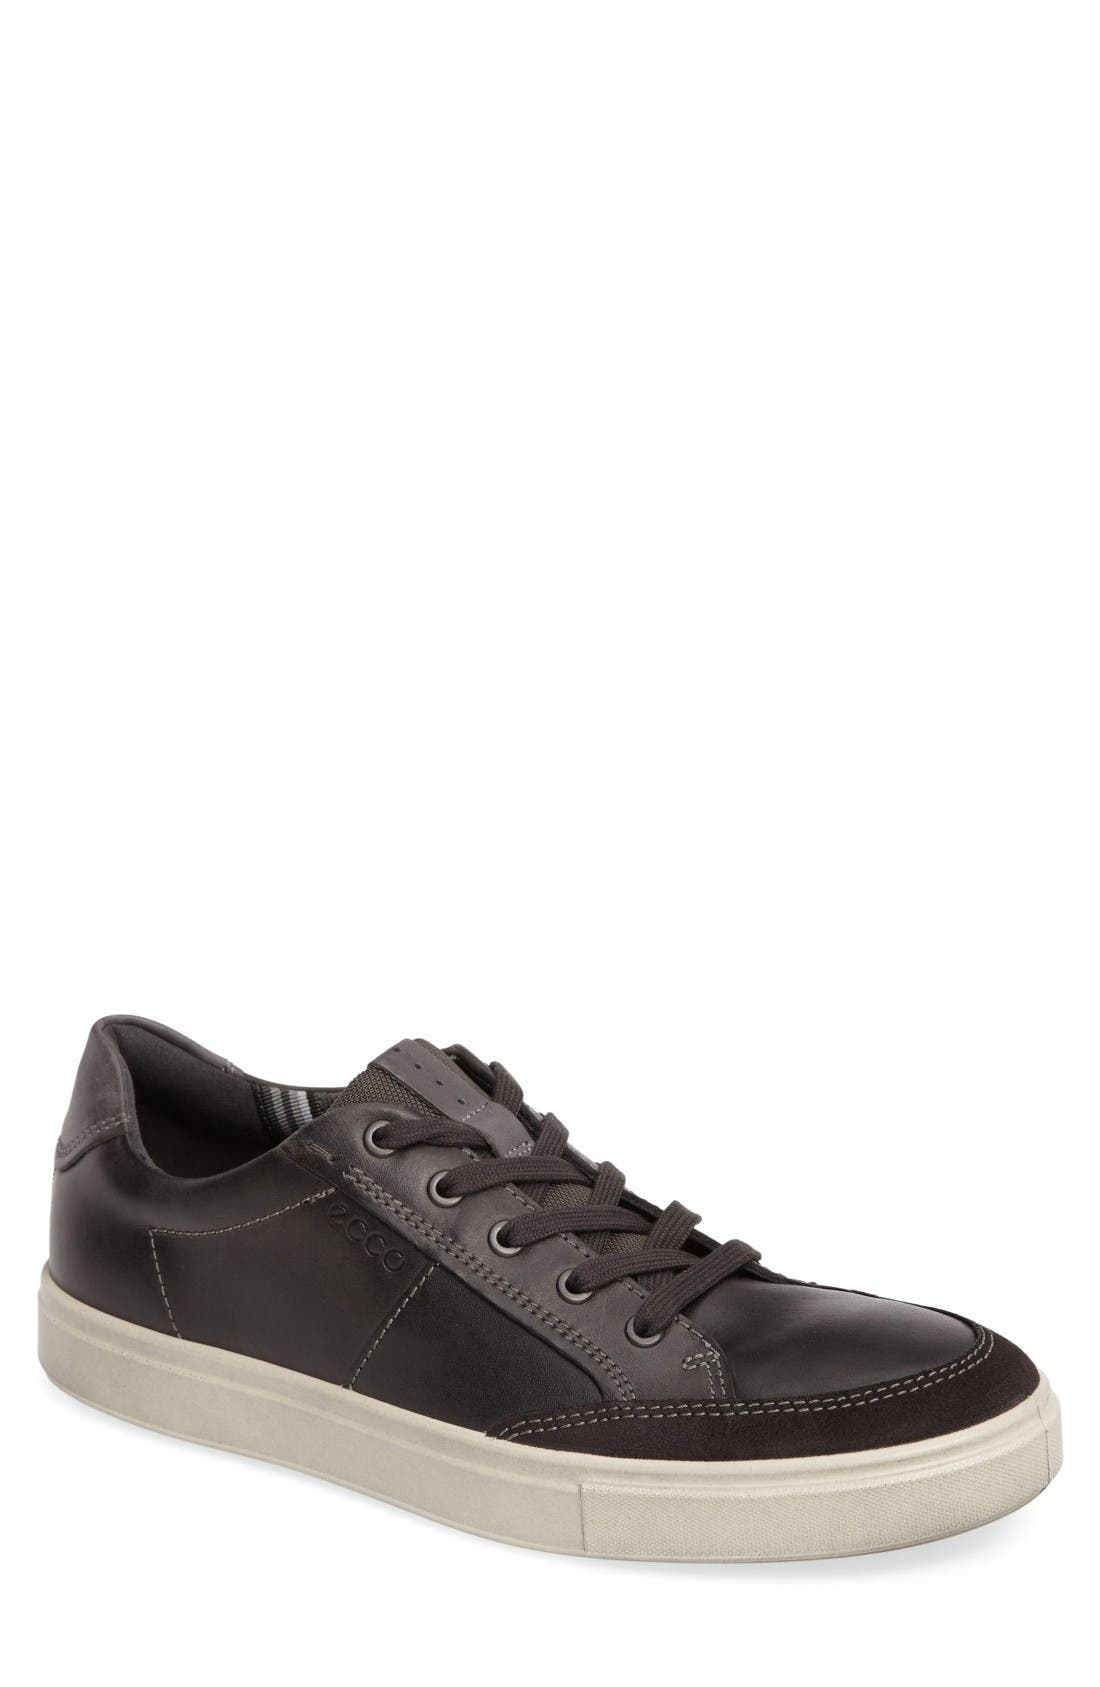 Kyle Classic Sneaker,                         Main,                         color, Moonless Leather